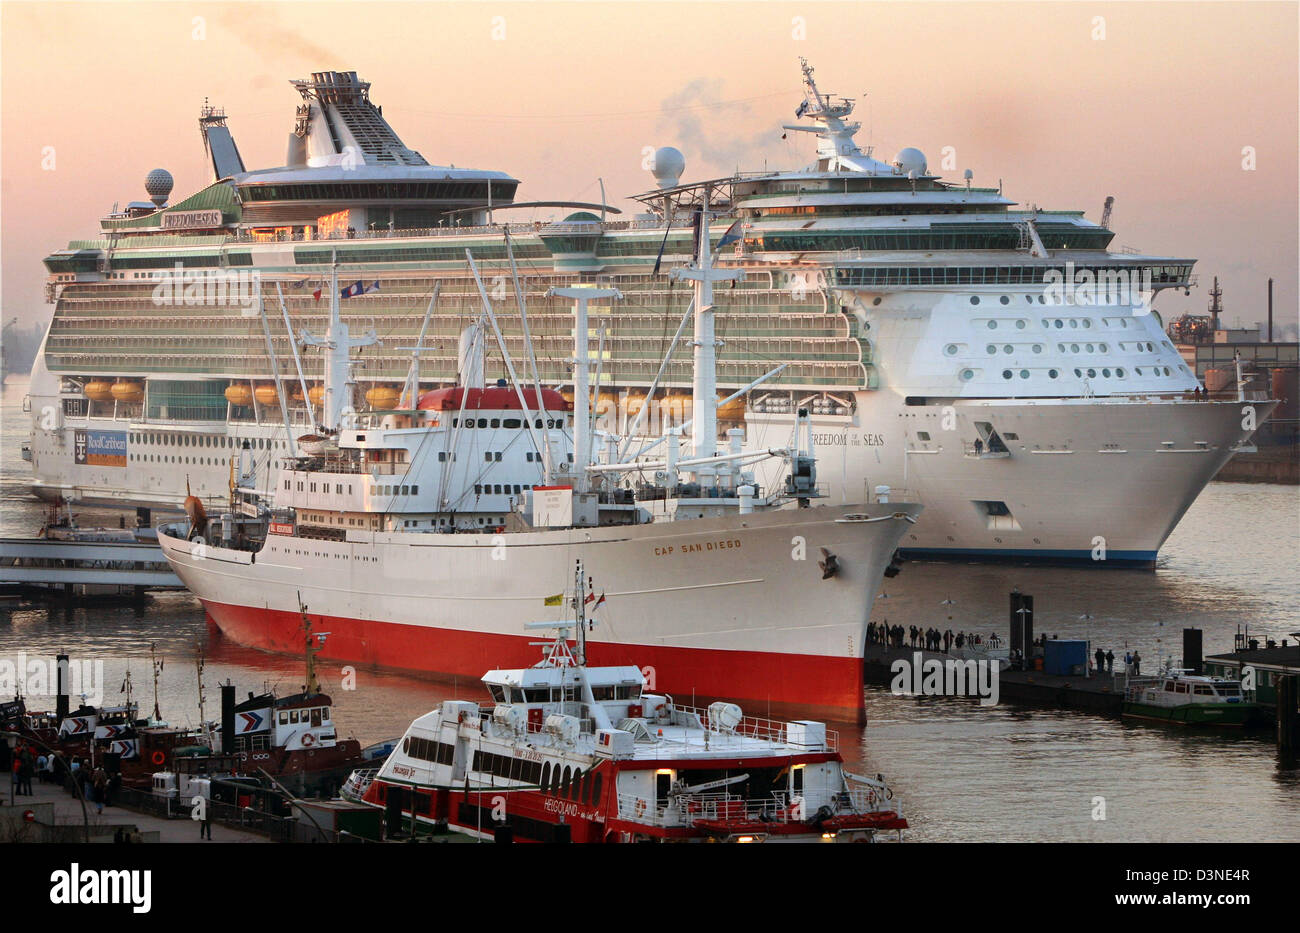 The giant cruiser 'Freedom of the Seas'  is watched by many onlookers while passing the museum ship 'Cap - Stock Image